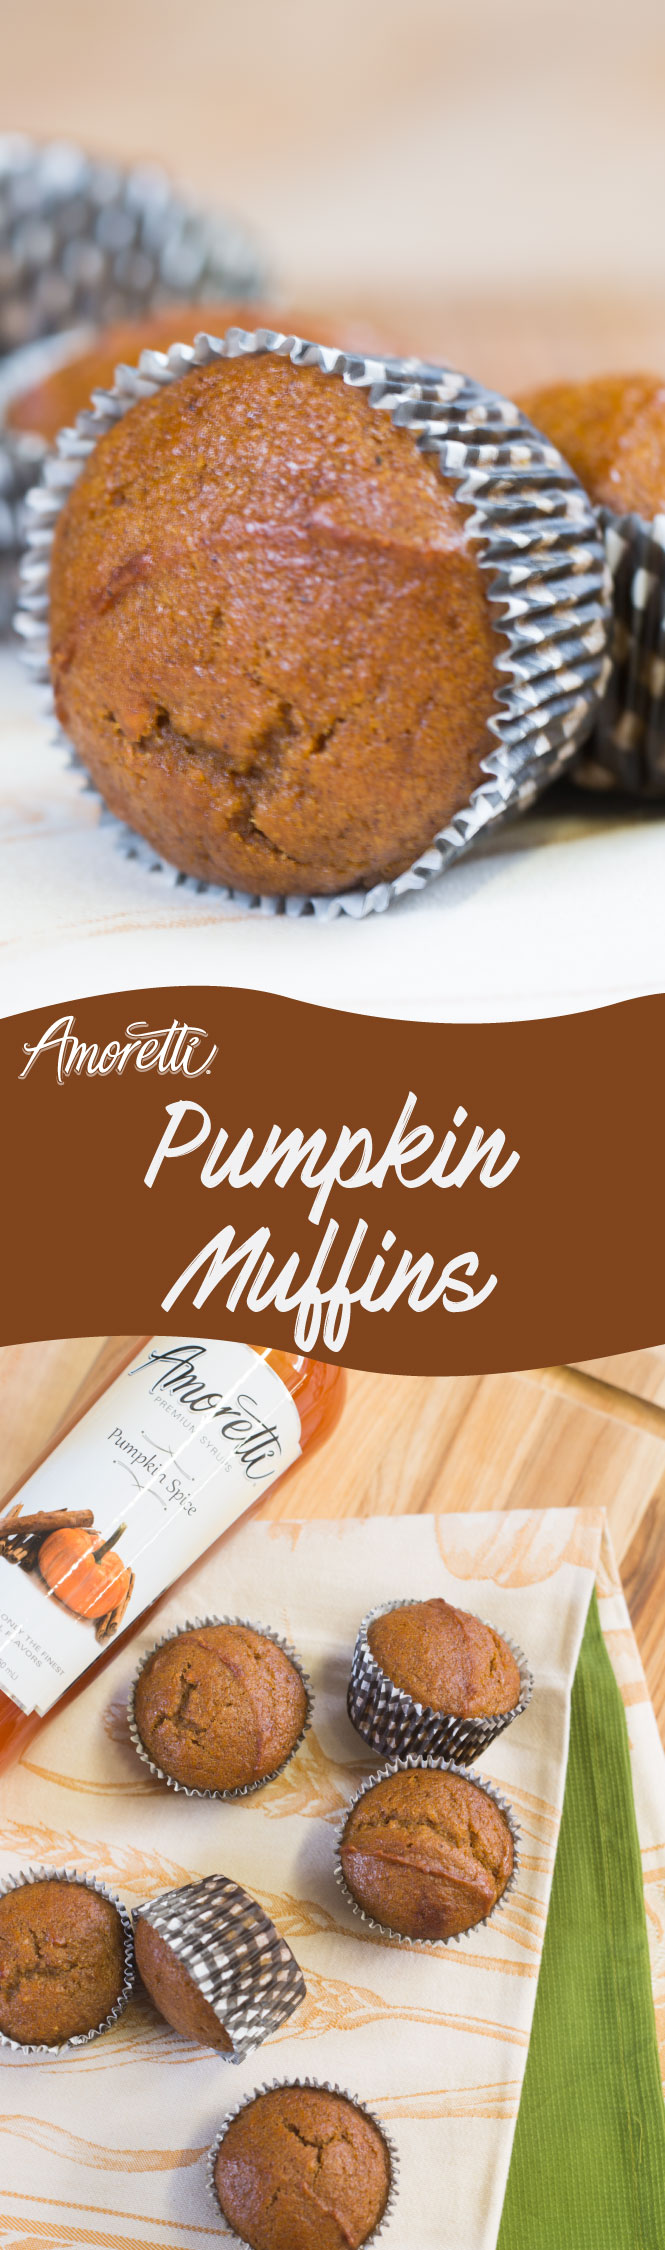 Delicious flavorable pumpkin muffins, easy recipe to follow!